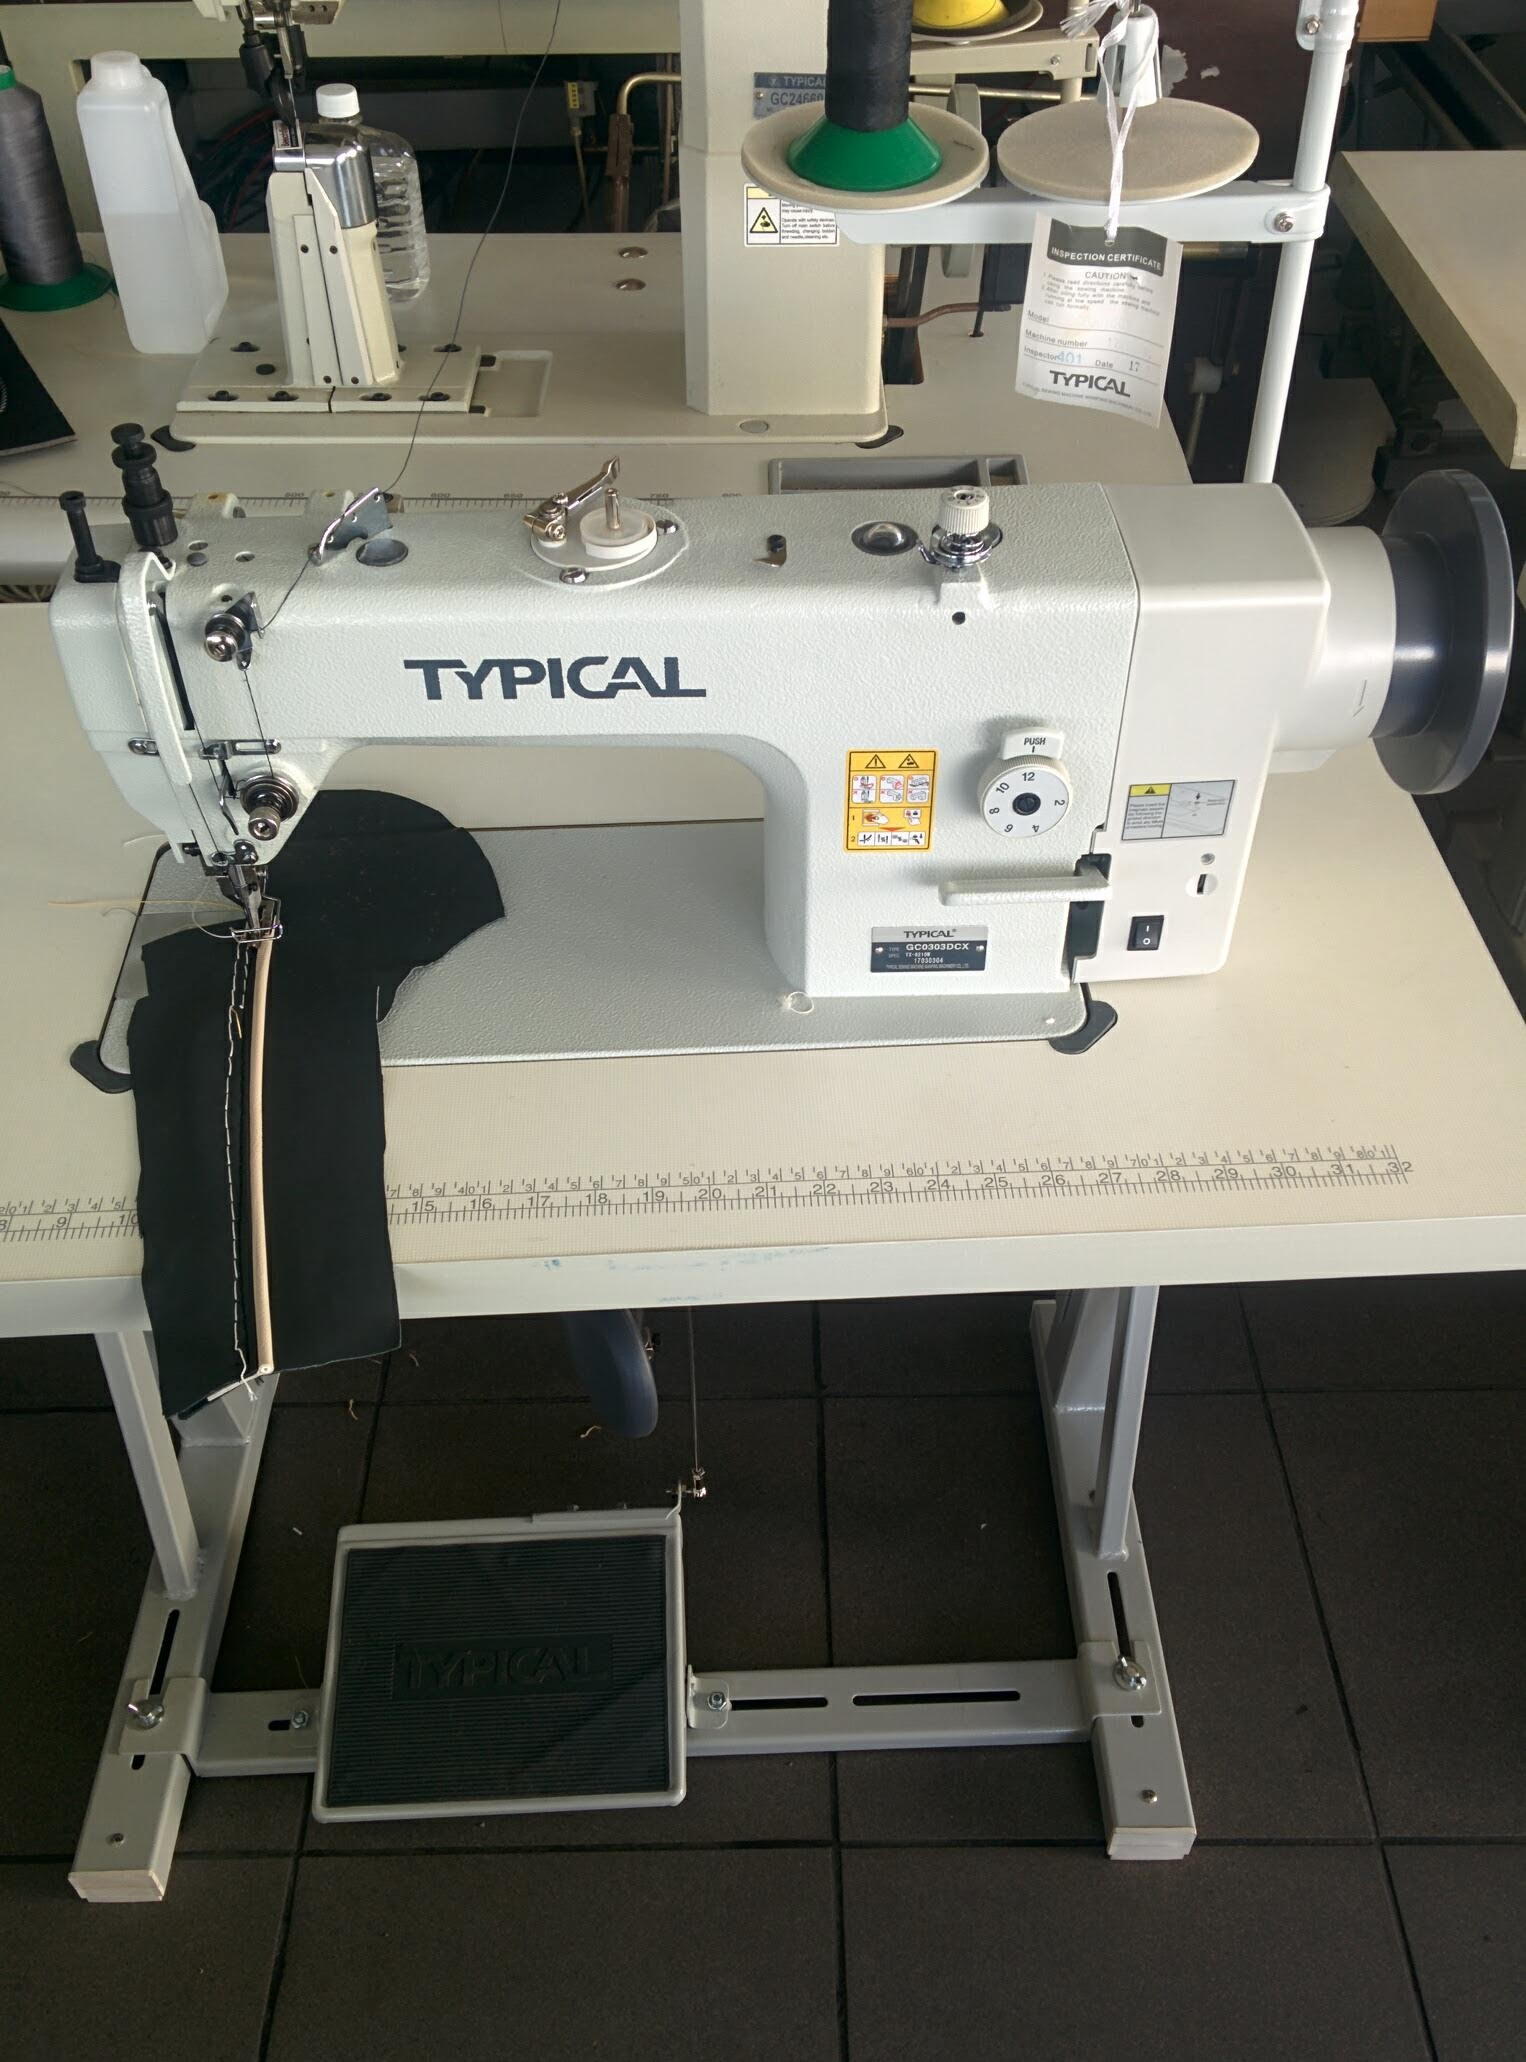 Lockstitch Sewing Machine with Drop and Alternating Top Feed